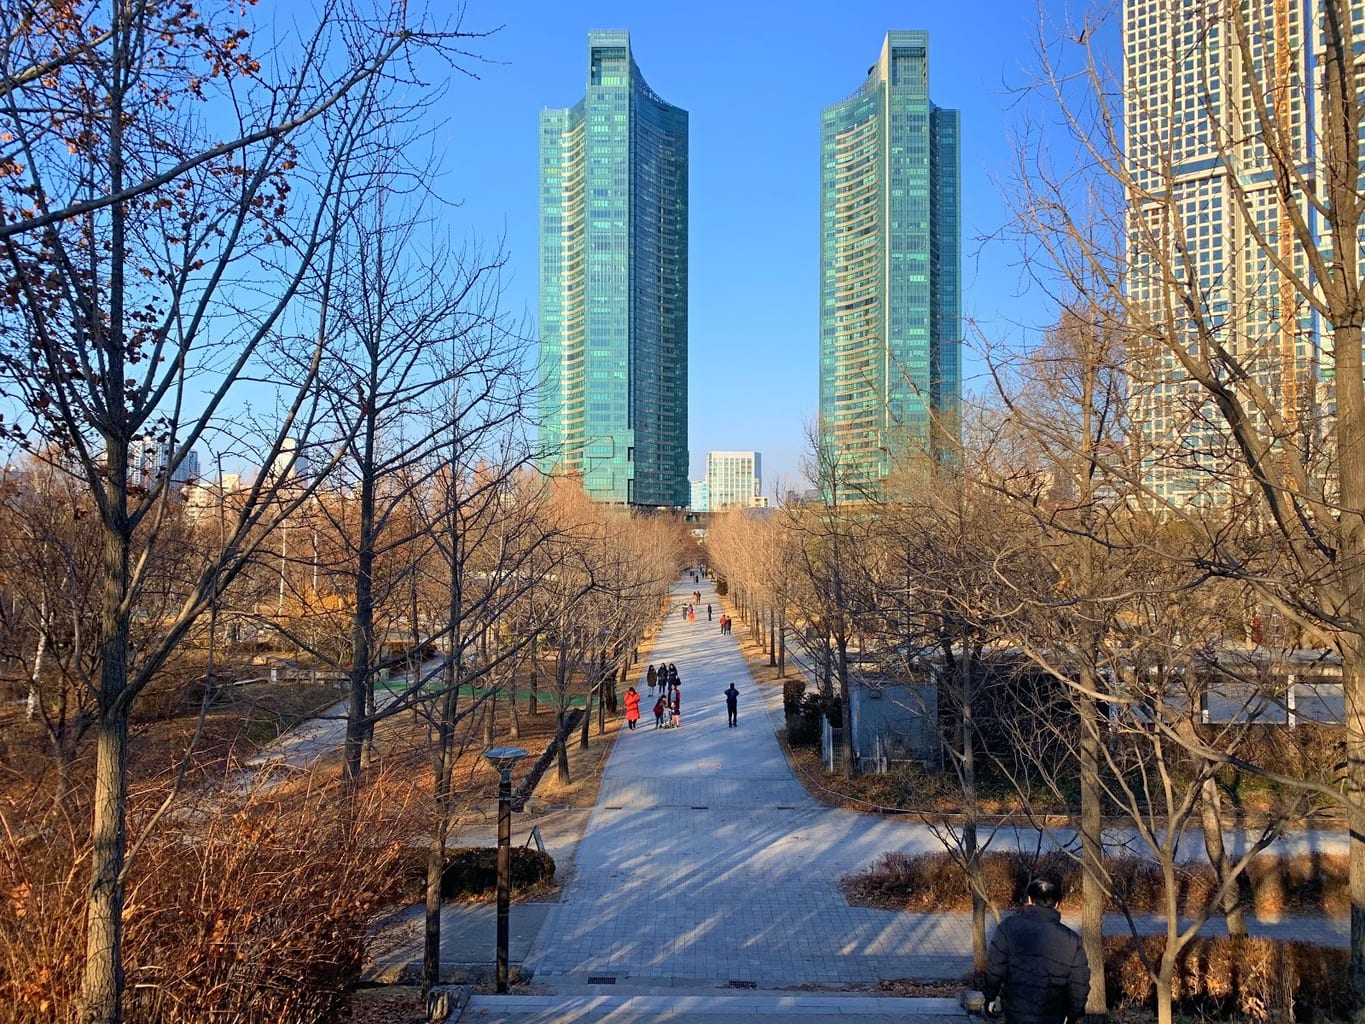 Seoul Forest in winter